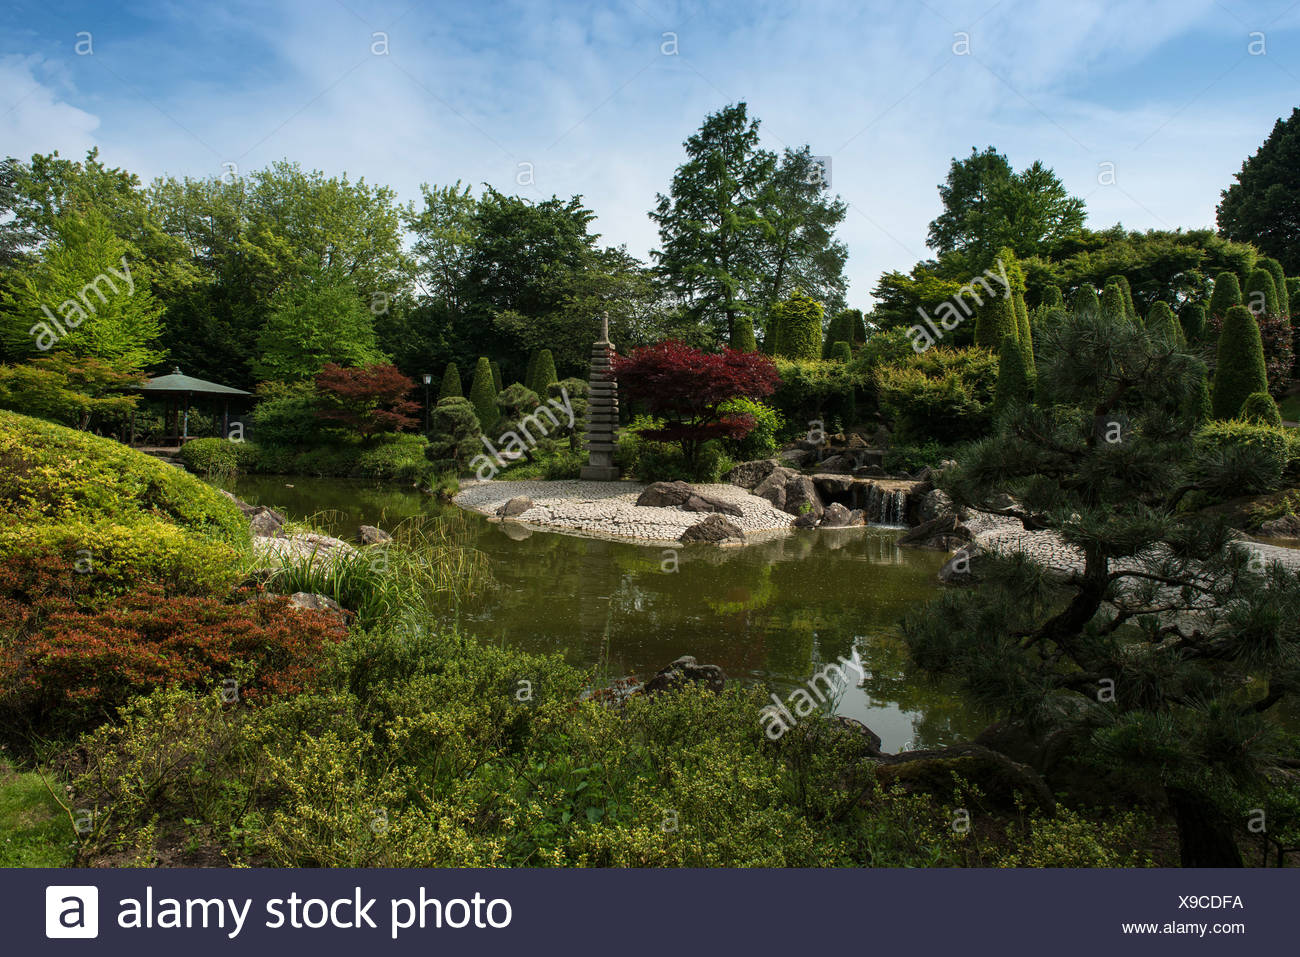 Japanese Garden, Rheinaue leisure park, Bonn, North Rhine-Westphalia - Stock Image